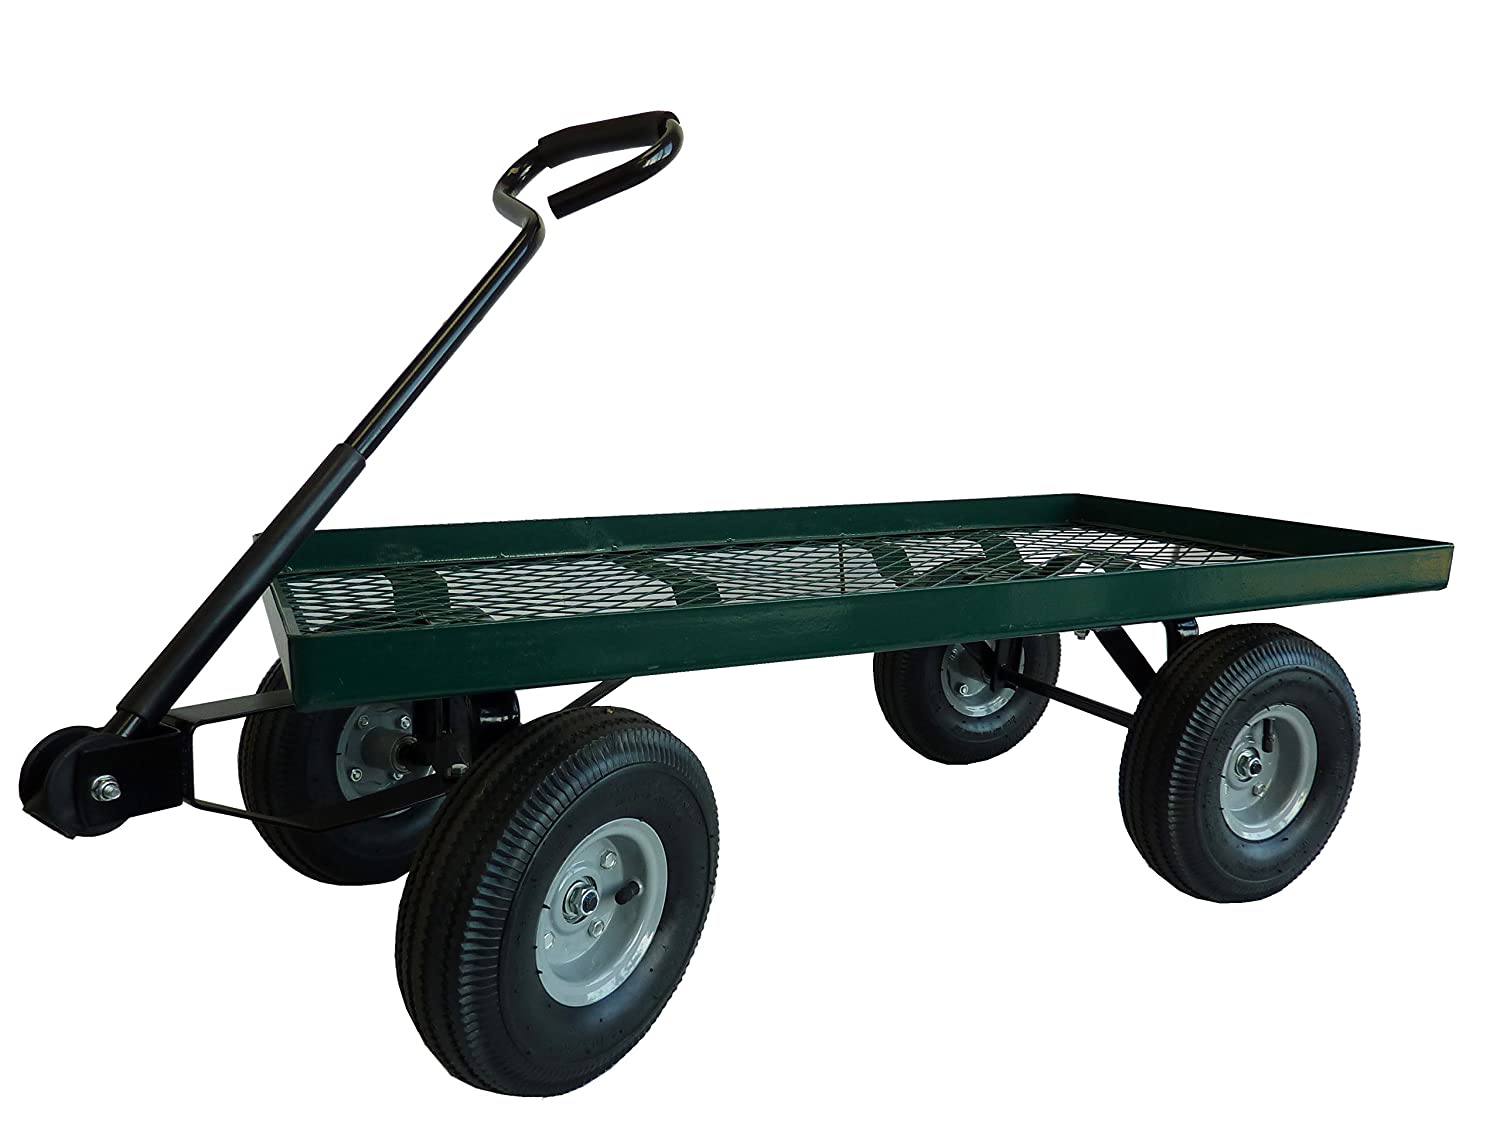 air amazon dl patio and steel lawn marathon pneumatic with frame green product garden wheelbarrows tires wheels filled cart com dp